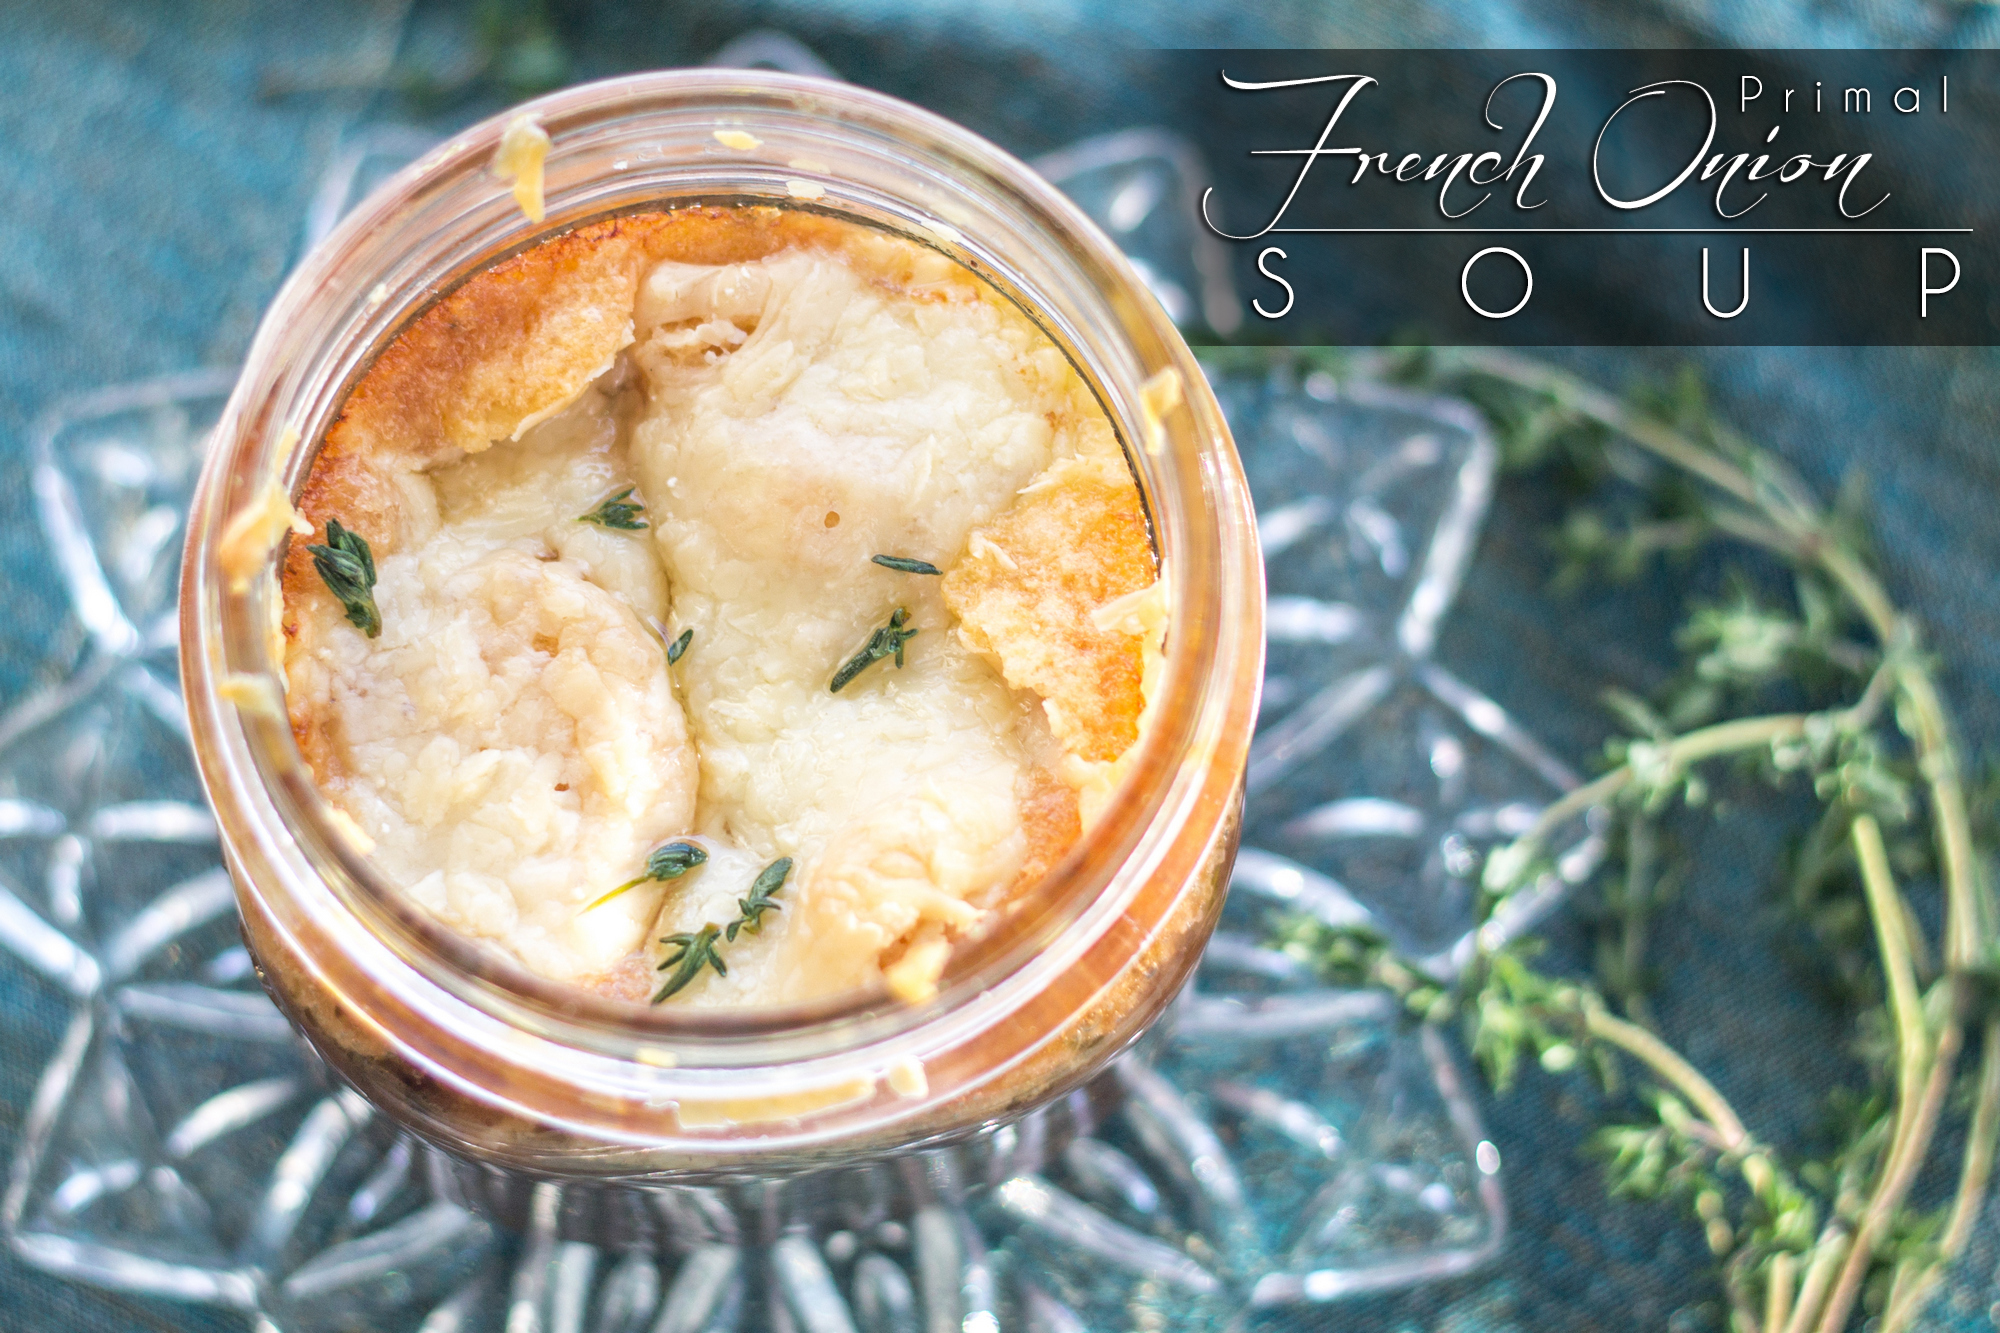 Primal French Onion Soup - http://www.theprimaldesire.com/primal-french-onion-soup/